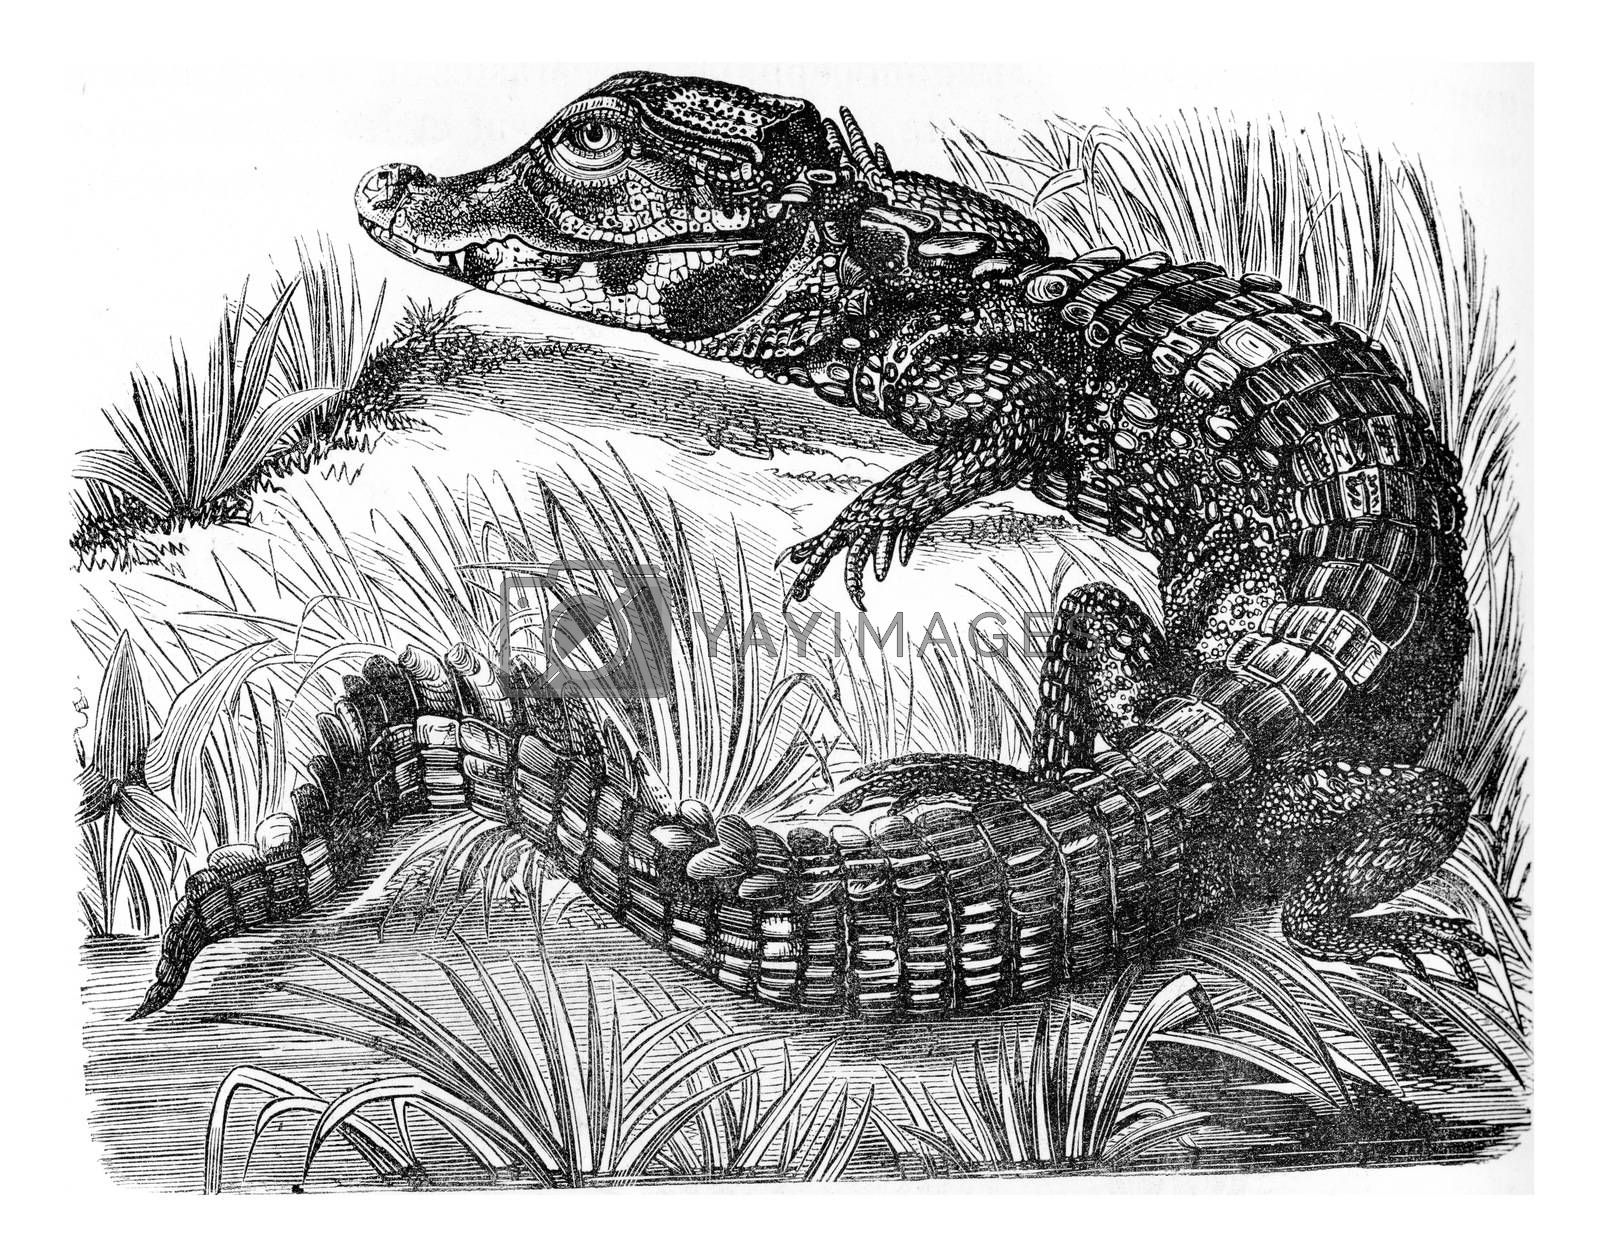 Caiman, vintage engraved illustration. Zoology Elements from Paul Gervais